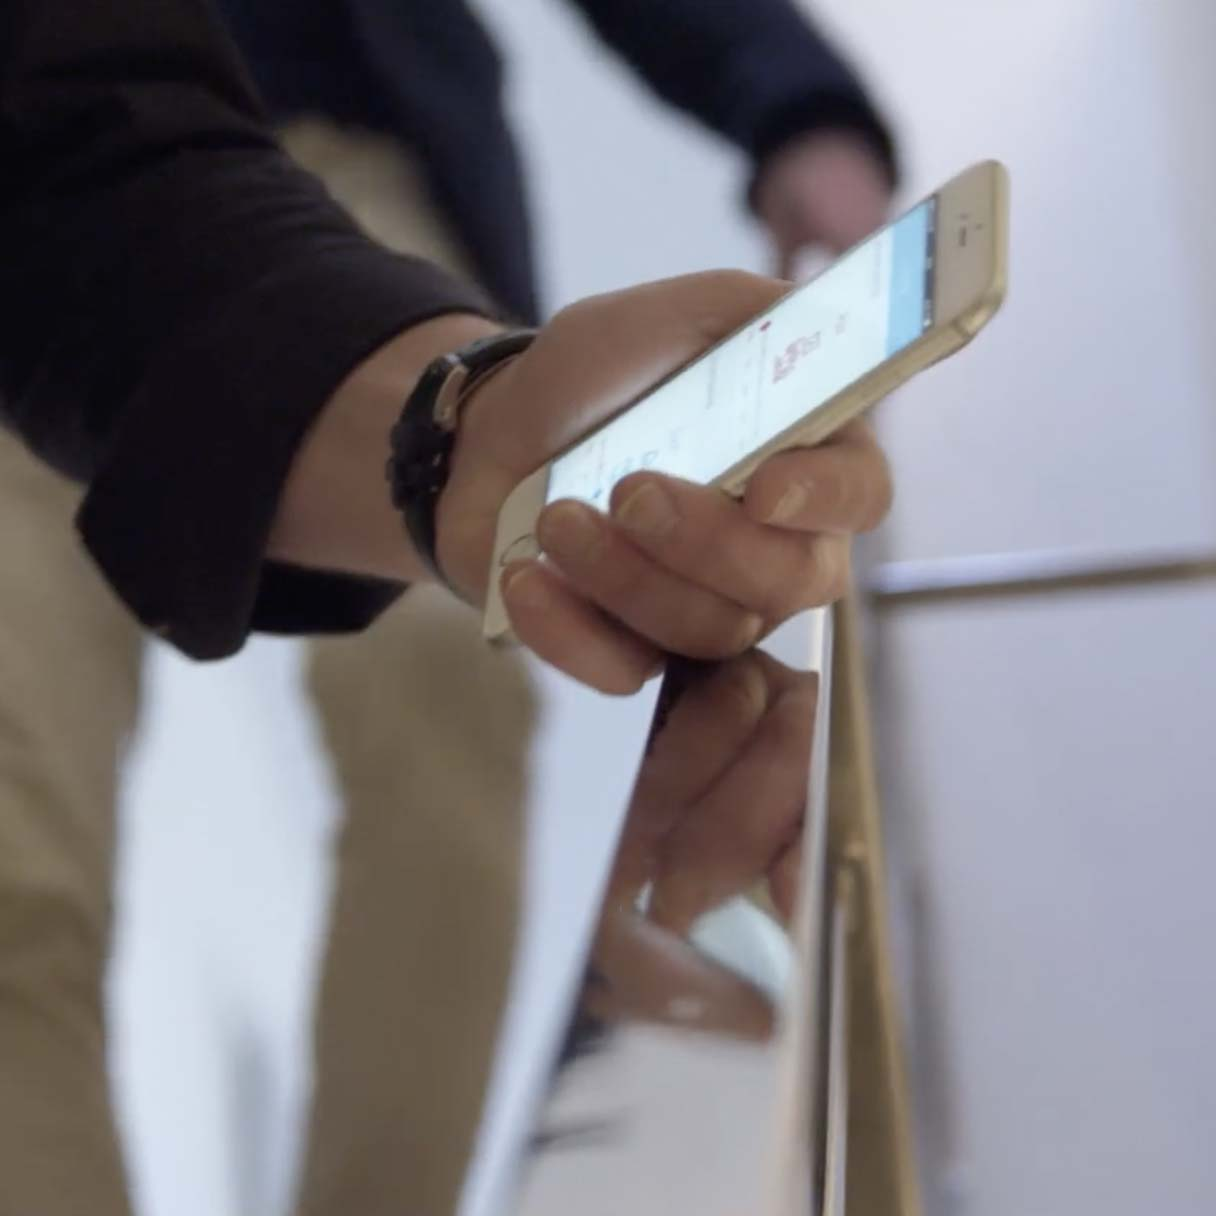 Man holding phone showing the SweepBright app